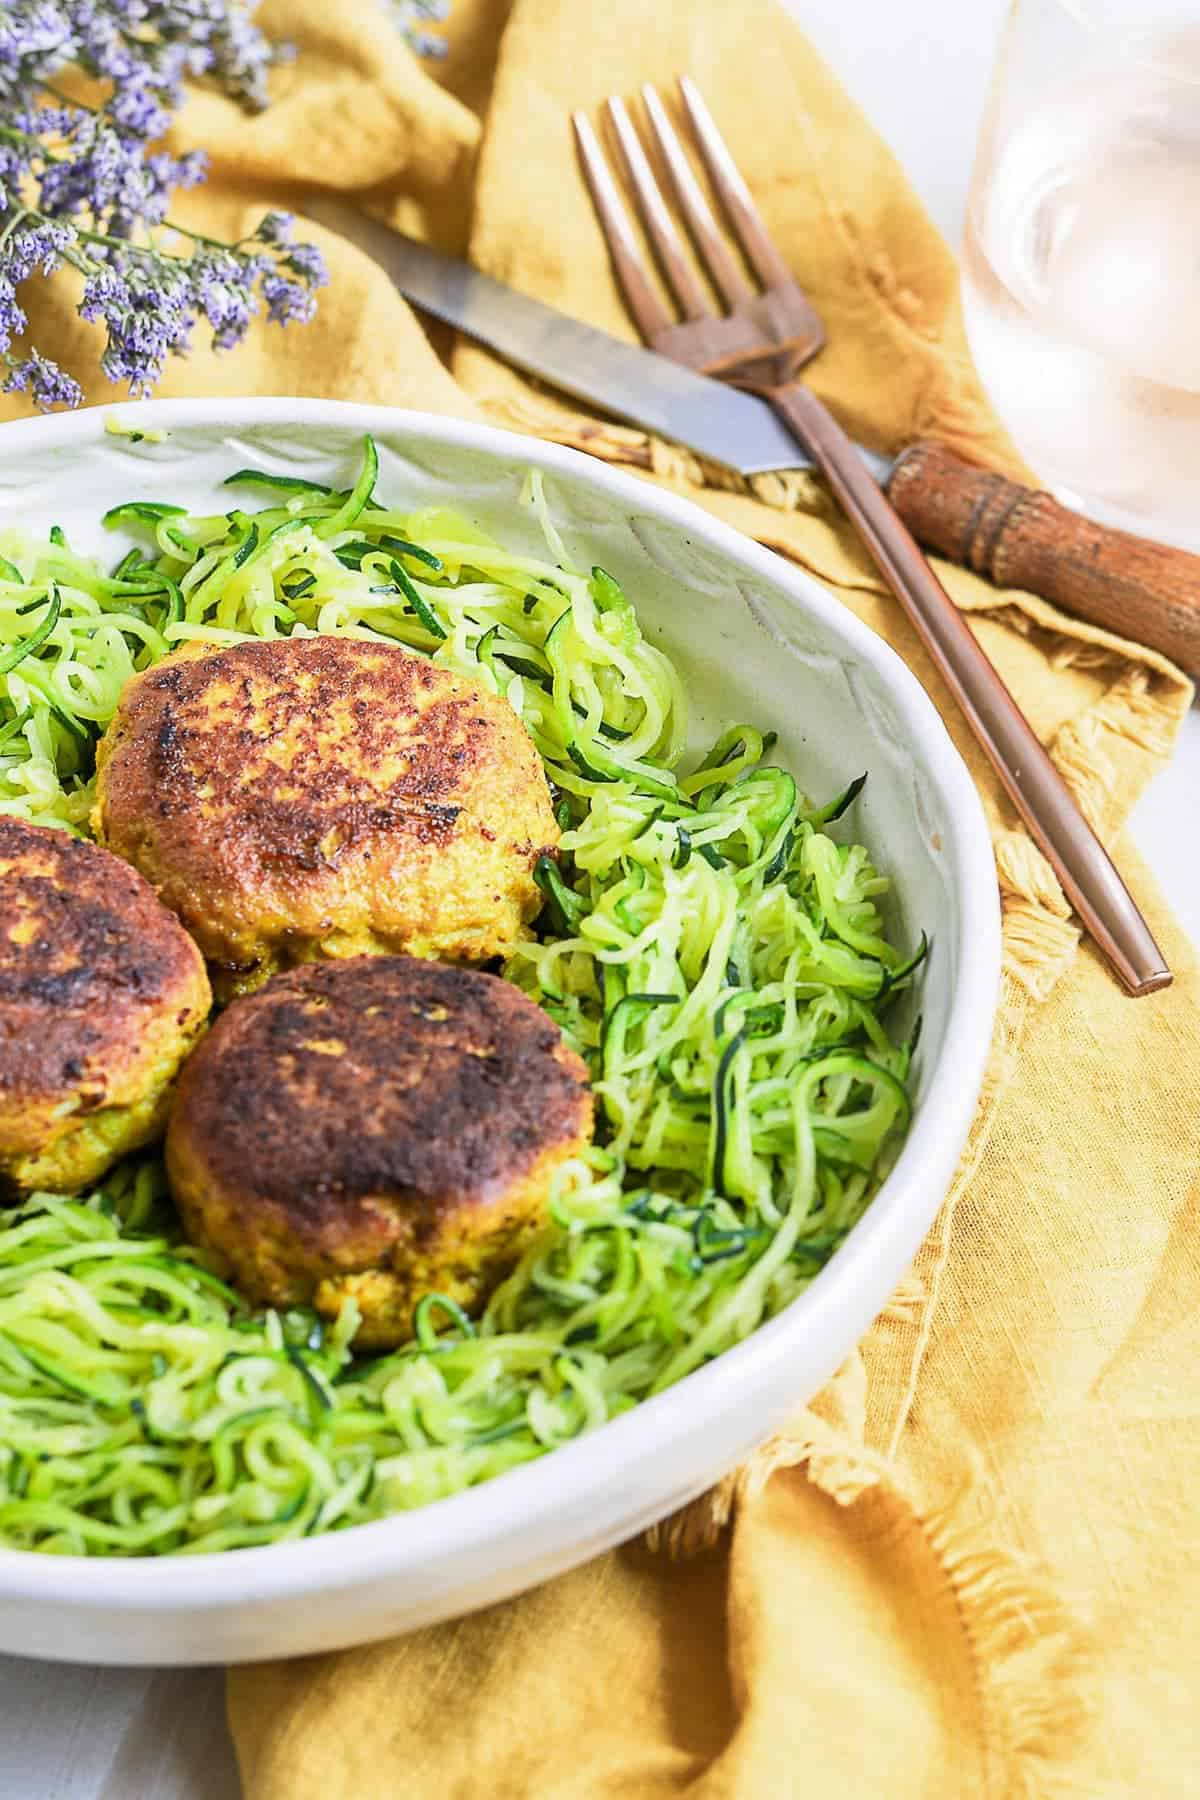 Meatballs and zoodles served with a knife and fork